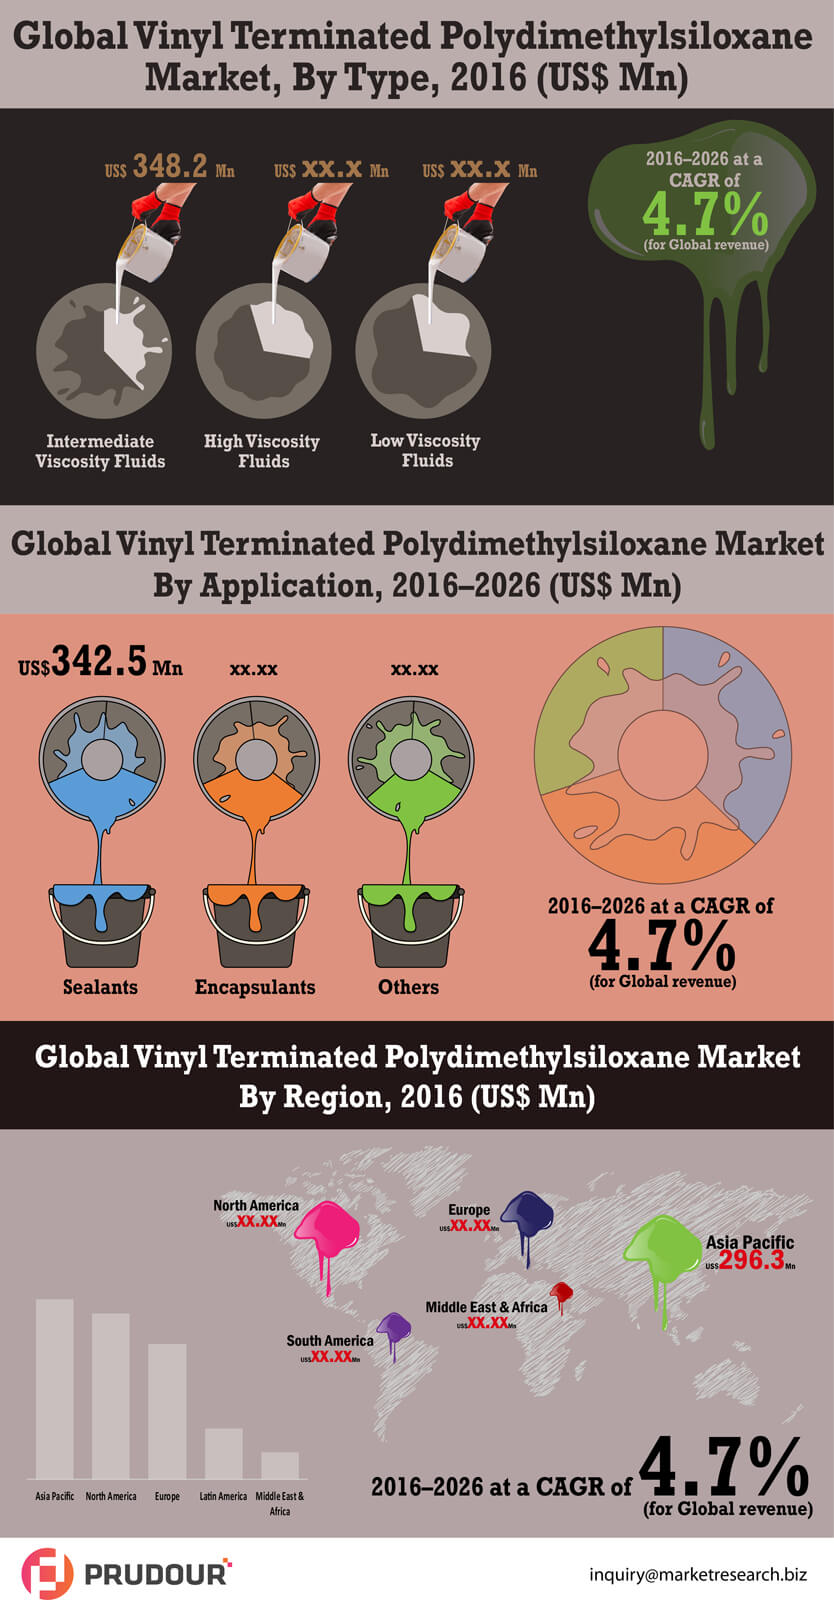 2026 US$ US$ 5,264.4 Mn: Global Vinyl Terminated Polydimethylsiloxane Market is expected to reach US$ 5,264.4 Mn in 2026